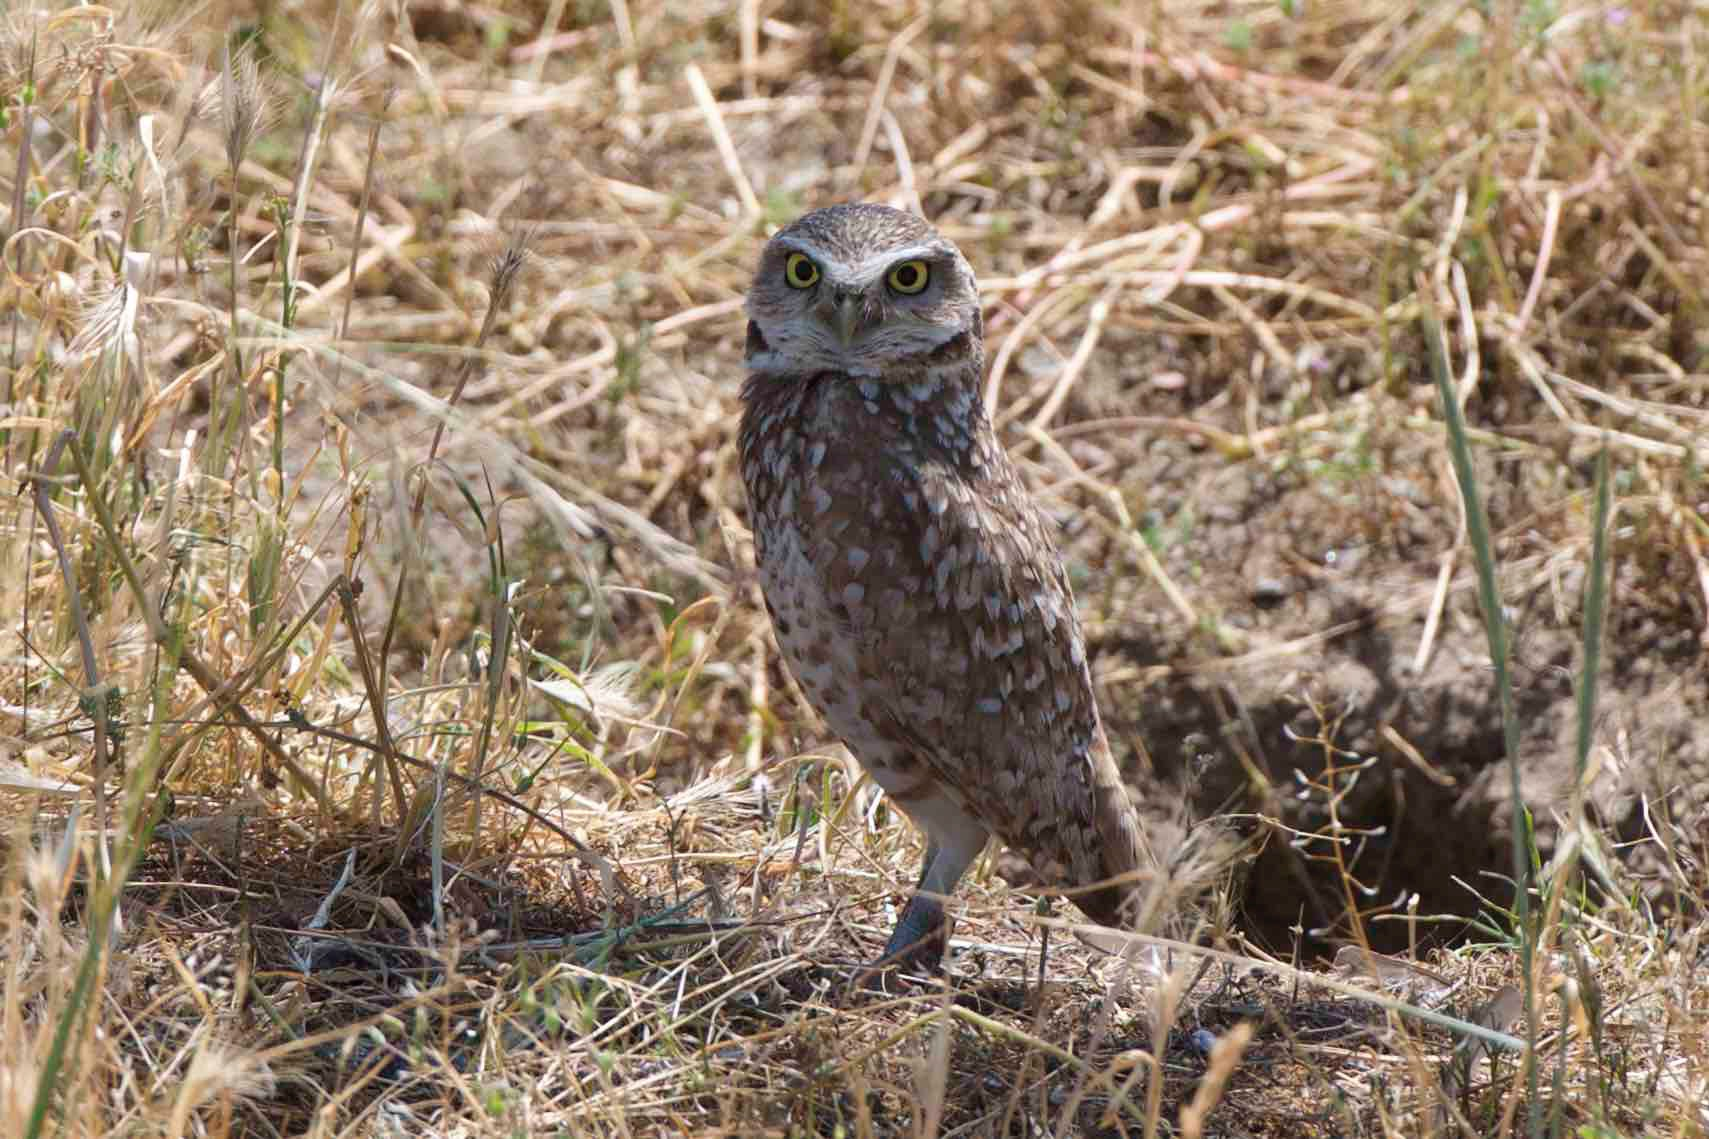 Today is #Superbowl vs #Superb_Owl challenge; posting some of my #Superb_Owls - here is #13 - burrowing owl in #DavisCA https://t.co/Nb5LUmGXNq